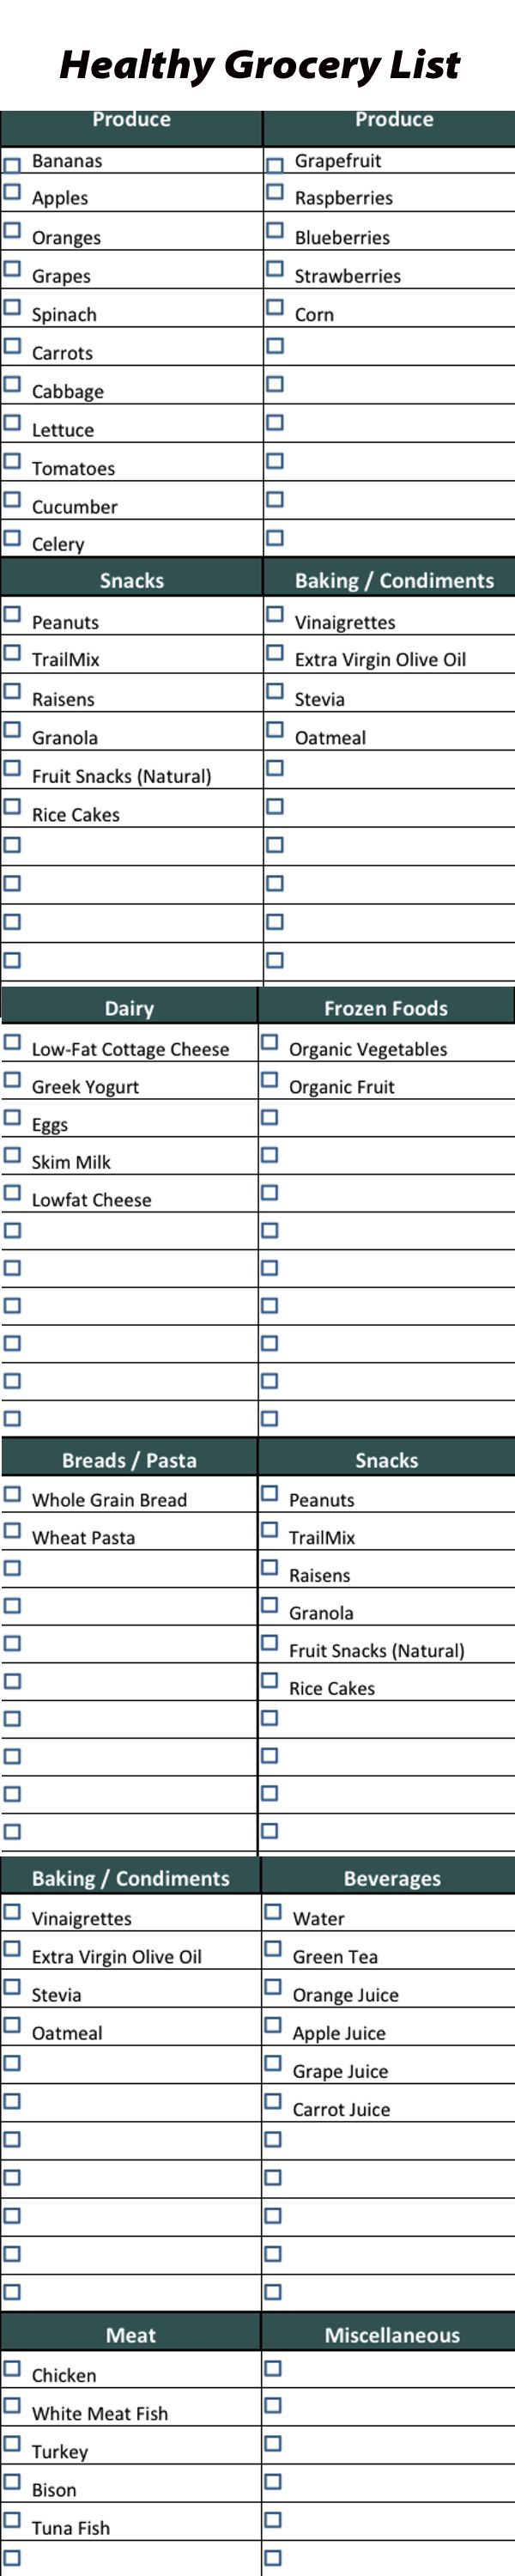 Healthy Grocery List. Getting Started, Key ingredients